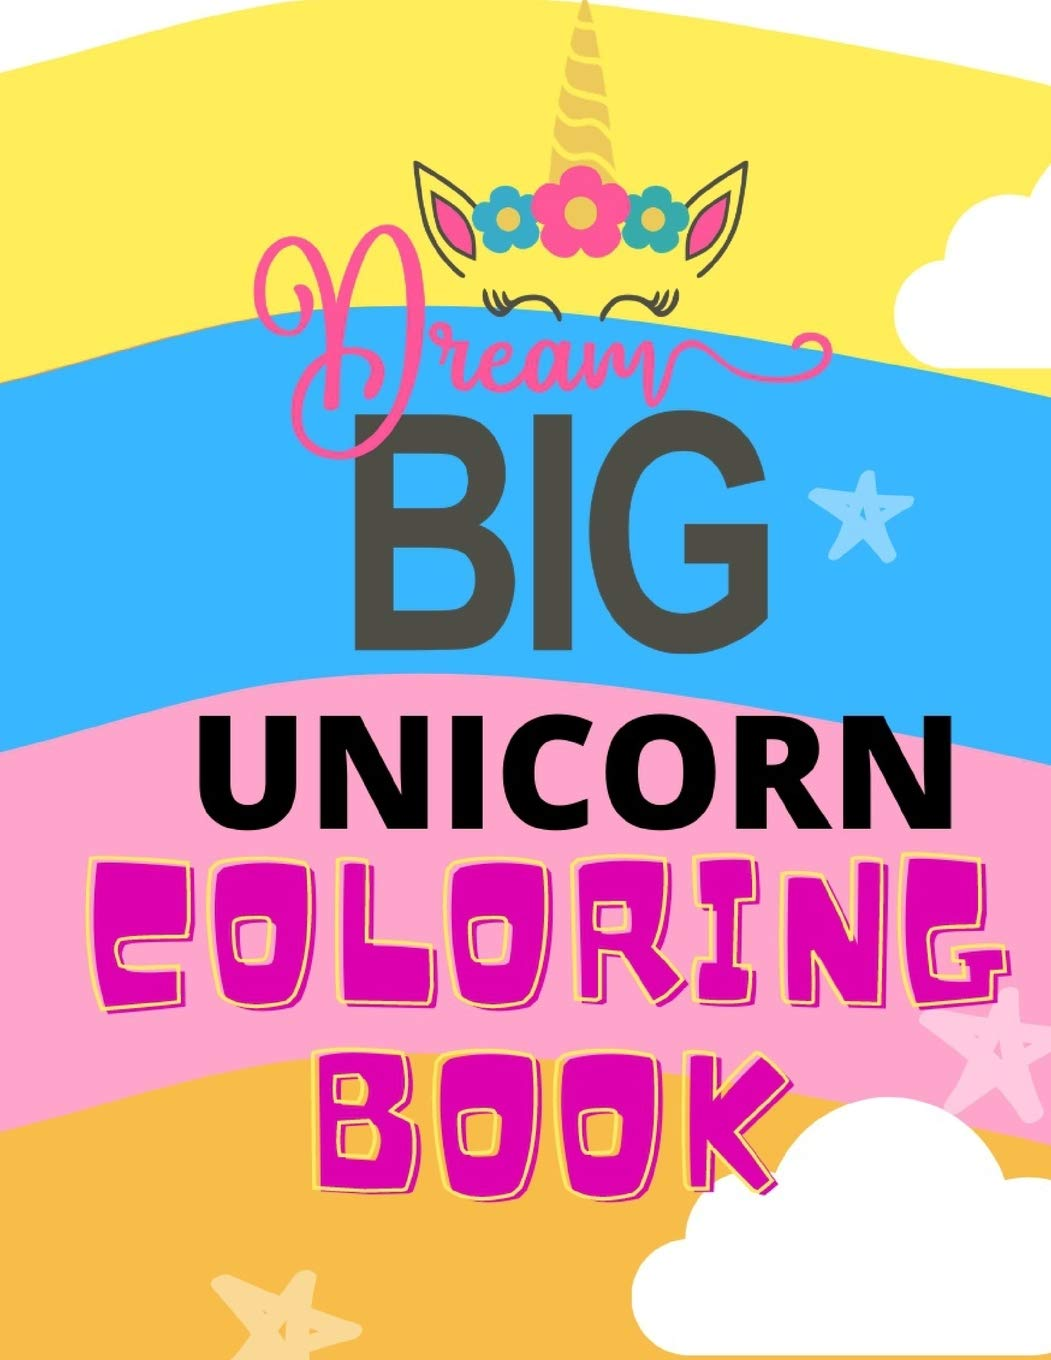 Dream Big Unicorn Coloring Book 60 Pages For Kids Ages 4 8 Coloring Books Paperback Kumiko Nakamura 9798683970055 Amazon Com Books